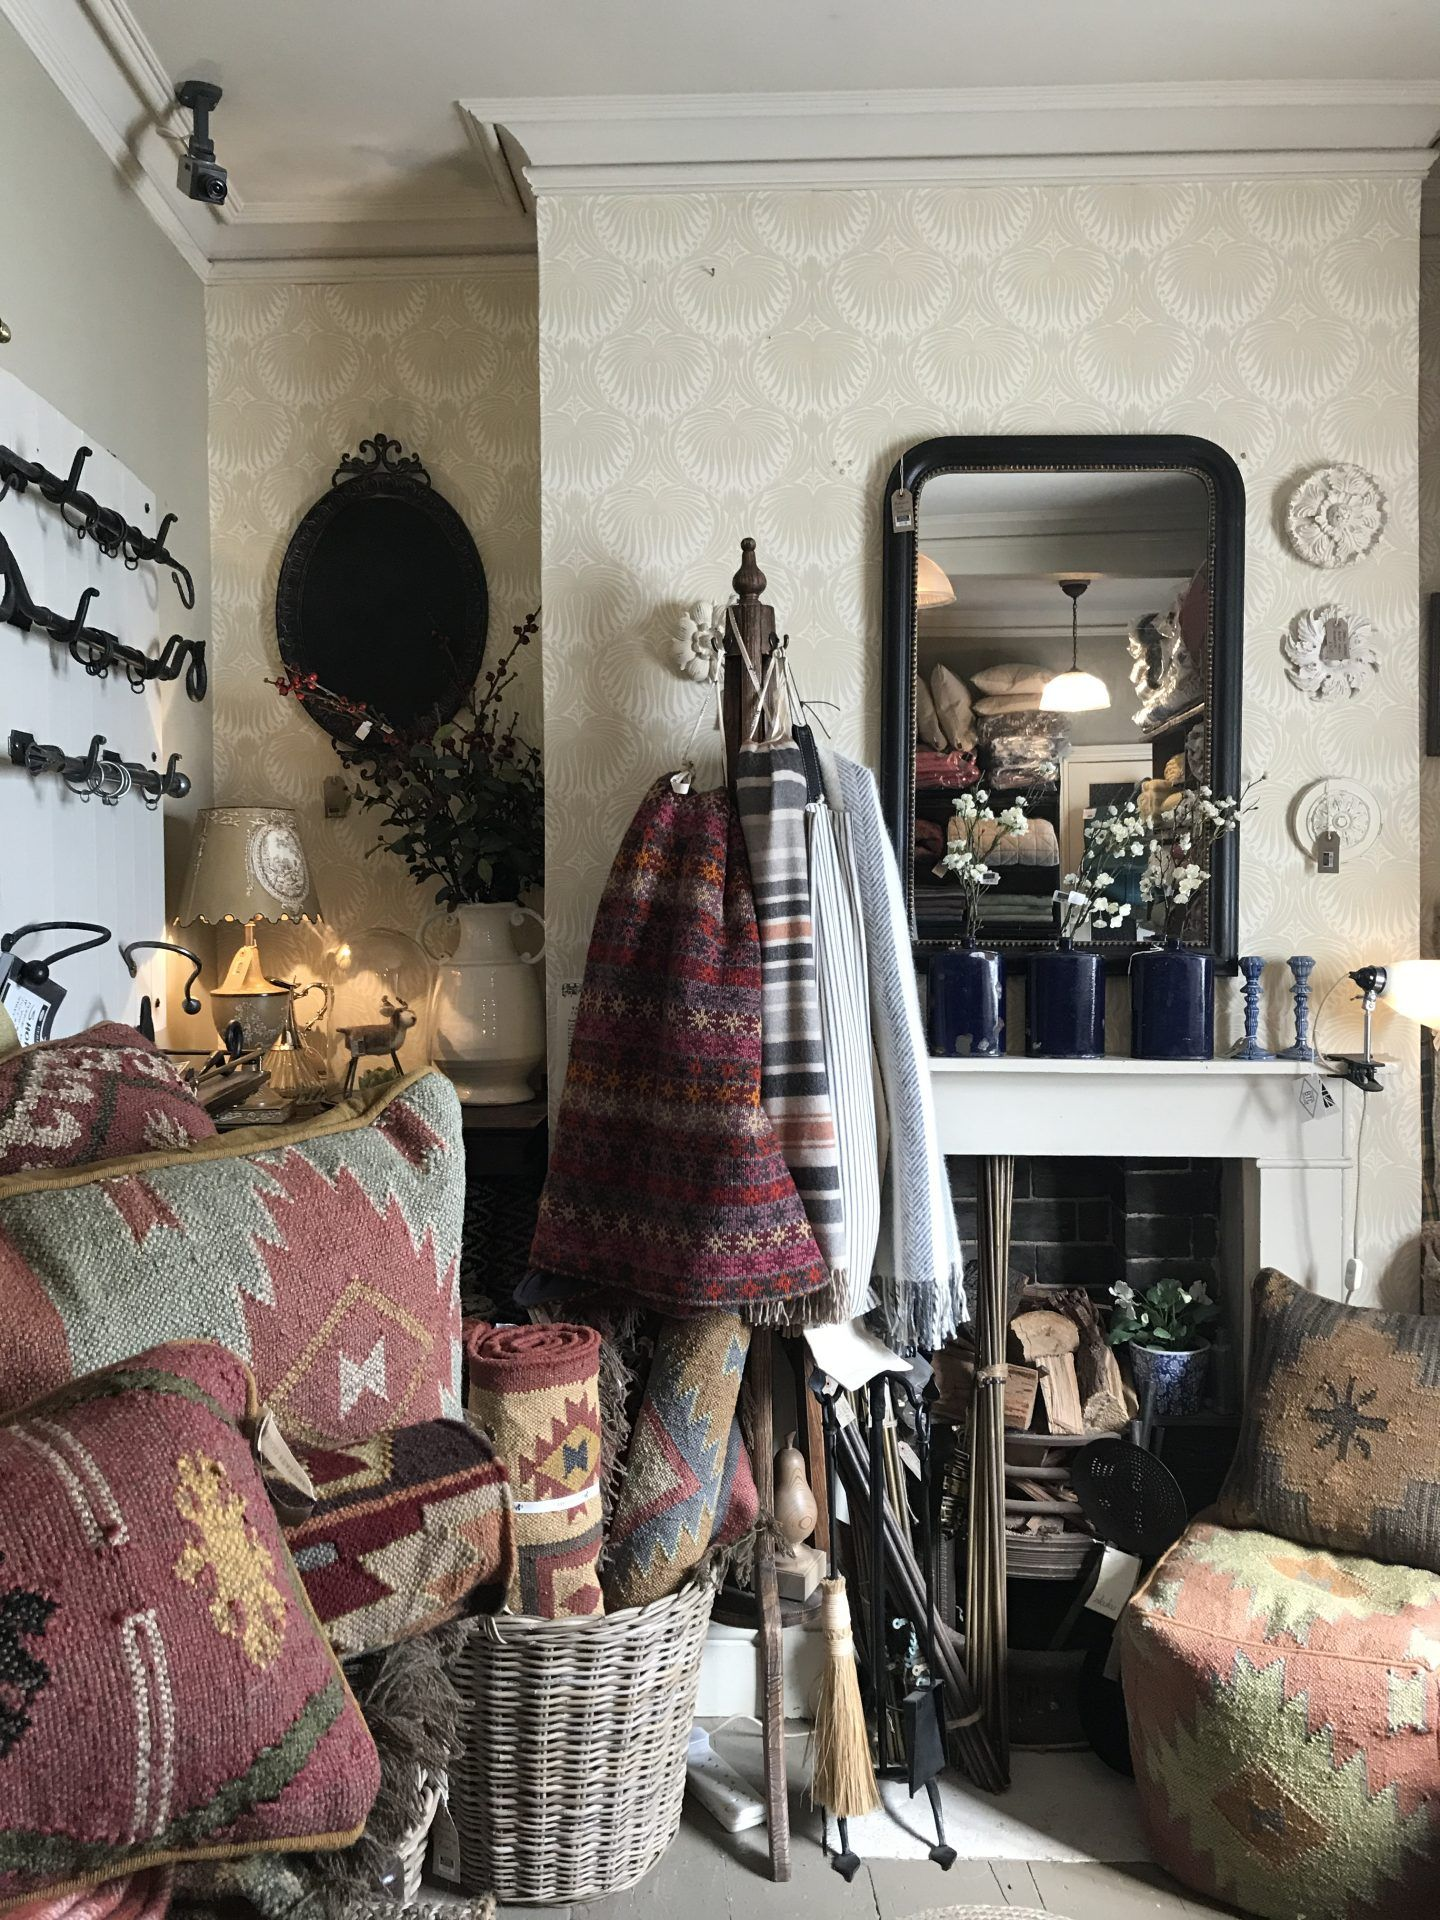 A day out antique hunting in leek staffordshire modern